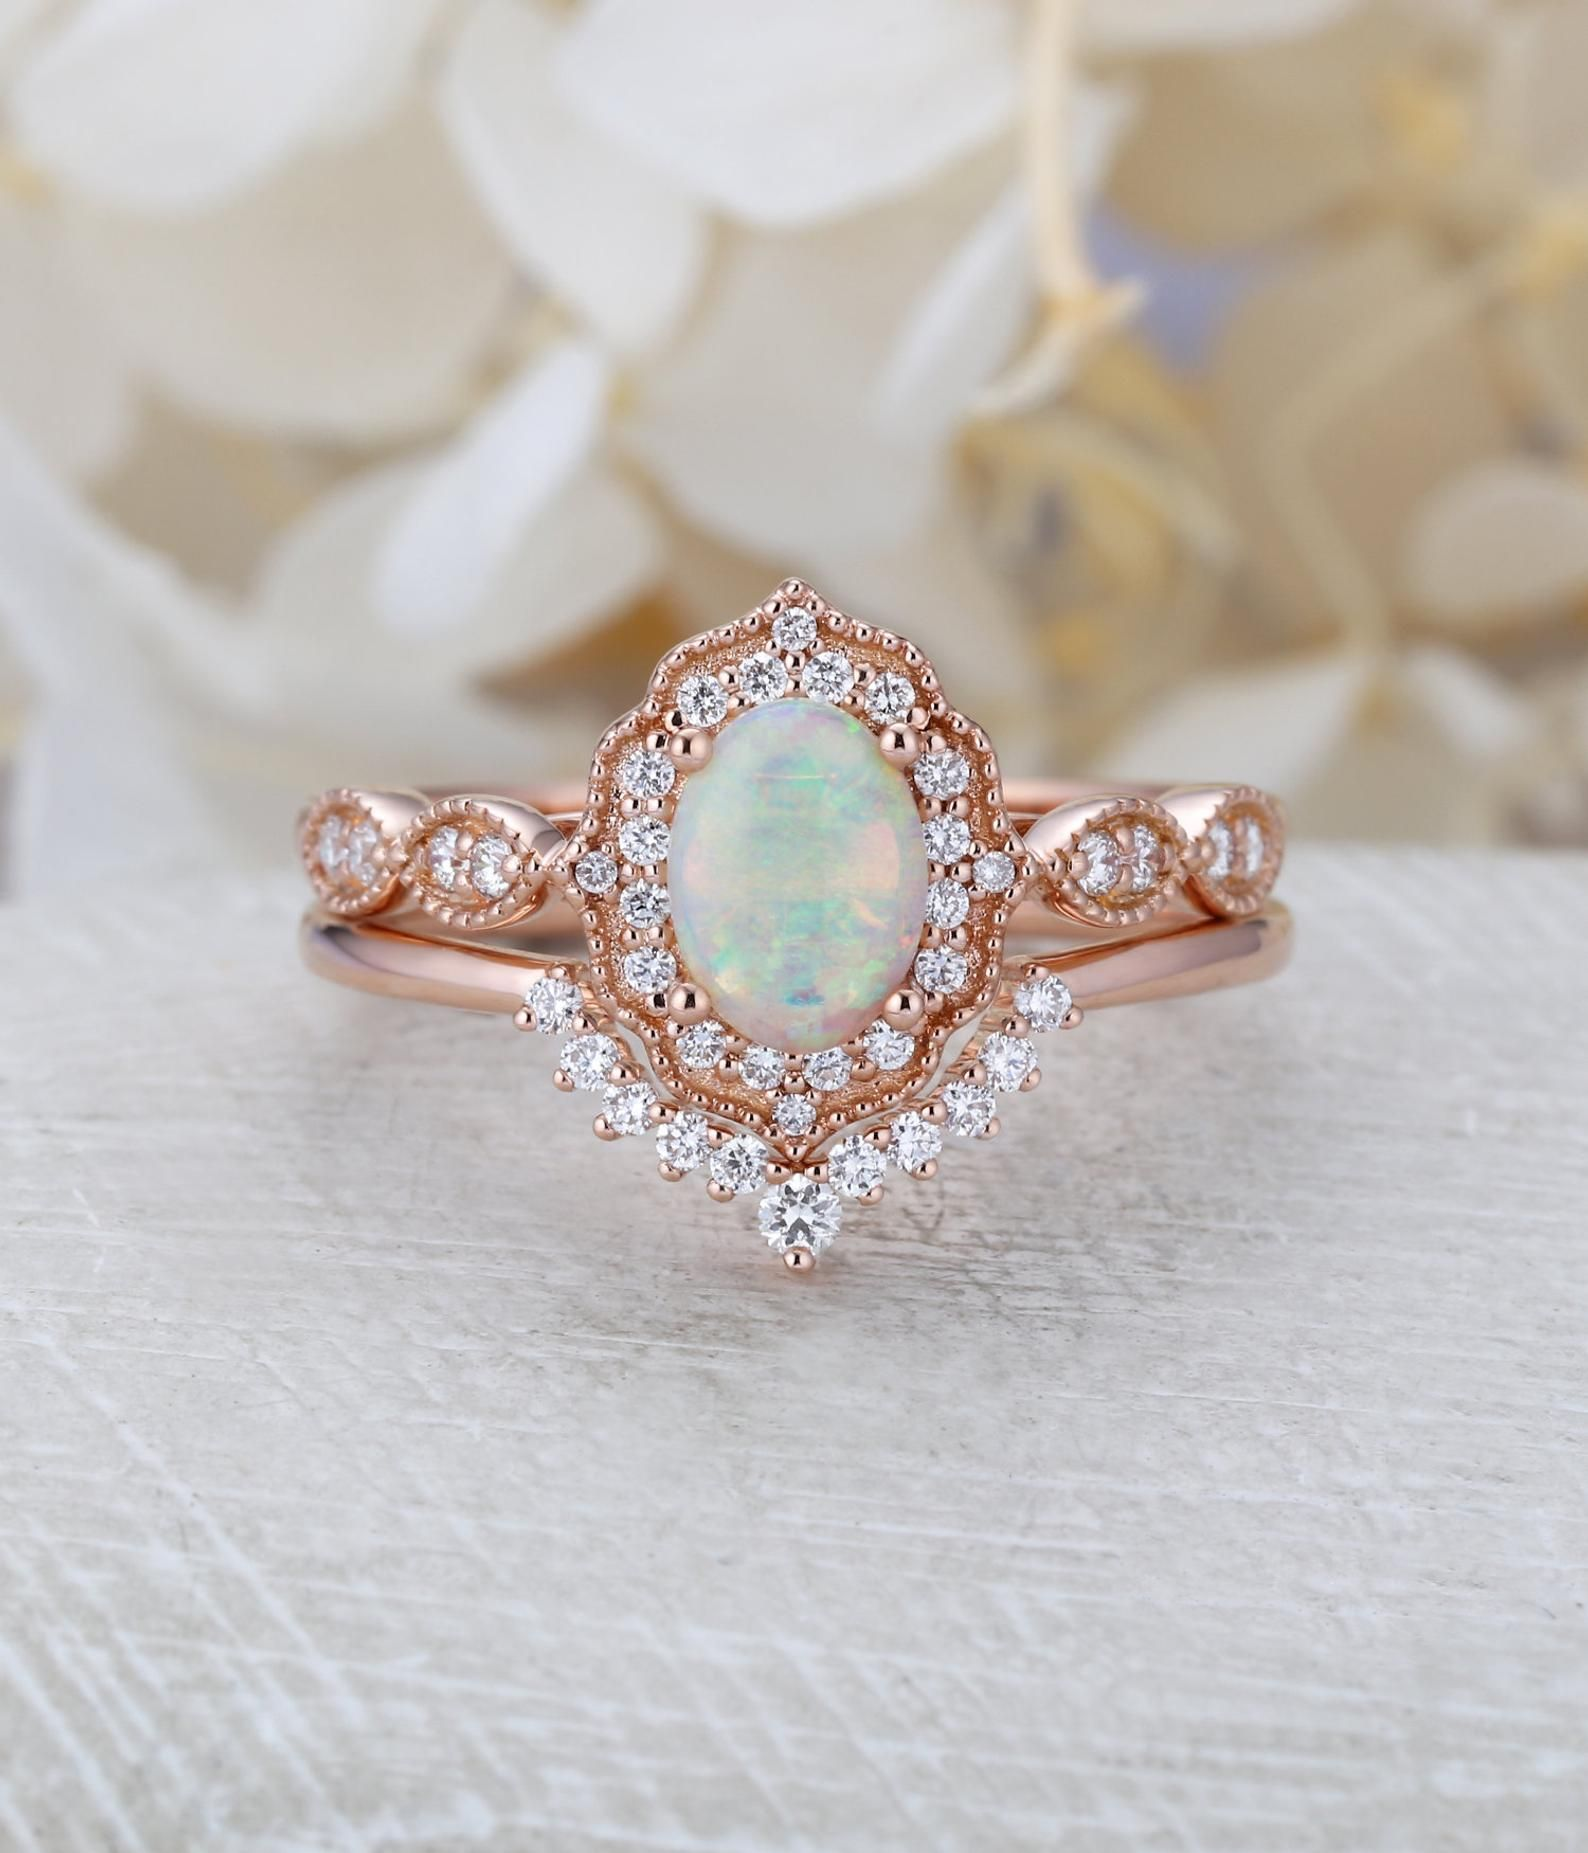 Opal Engagement Ring Set Rose Gold Halo Diamond Vintage Oval Etsy In 2020 Engagement Rings Opal Rose Engagement Ring Rose Gold Engagement Ring